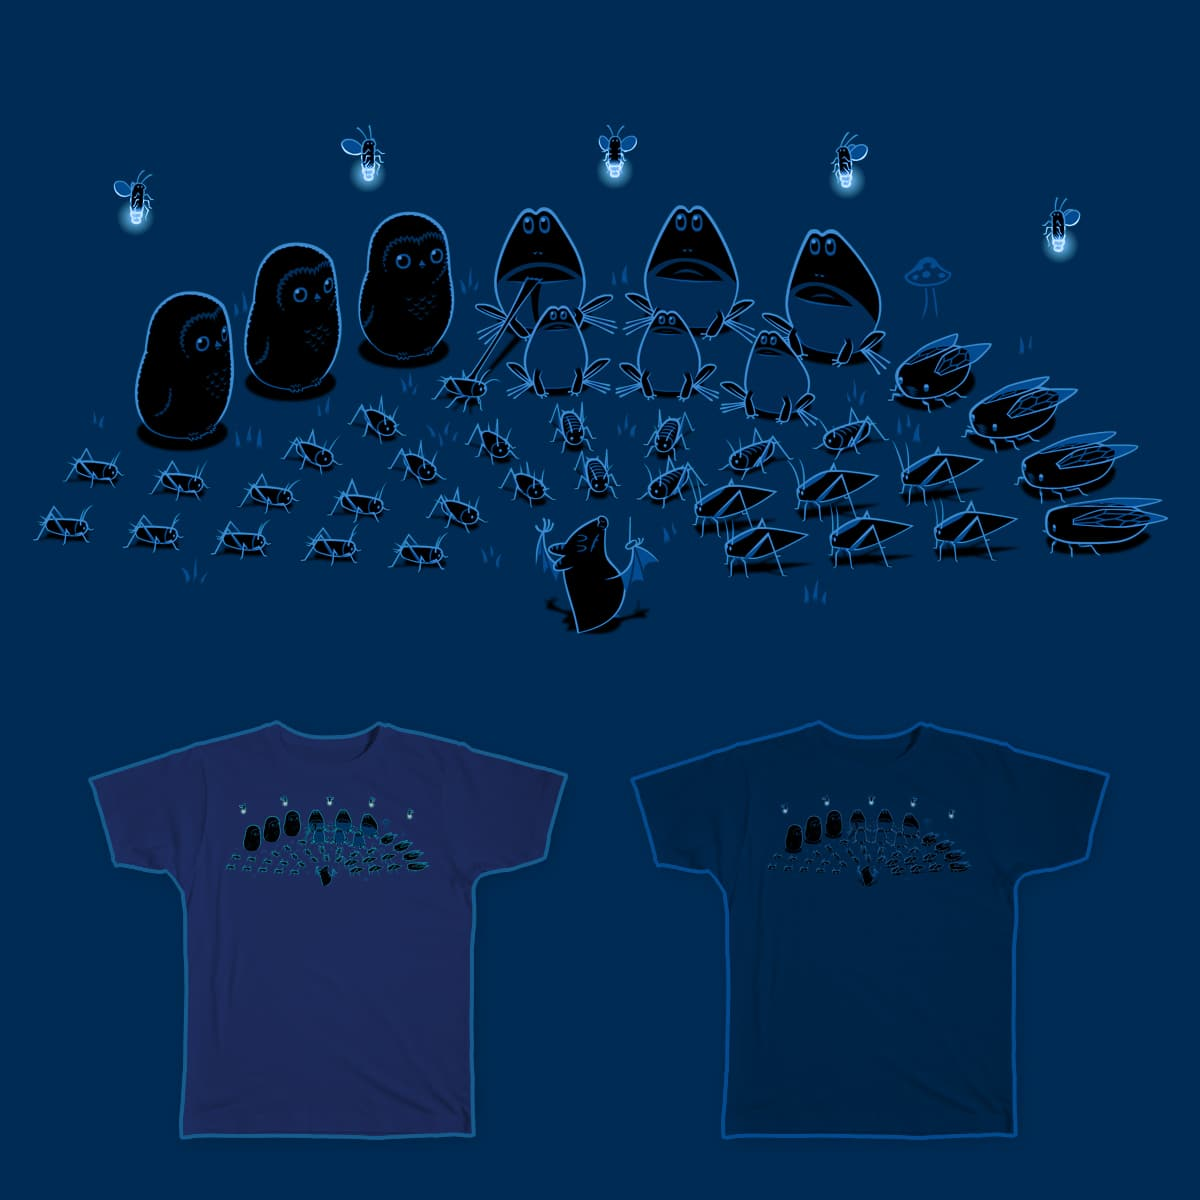 Nighttime Symphony II by ALEJANDR0ID on Threadless